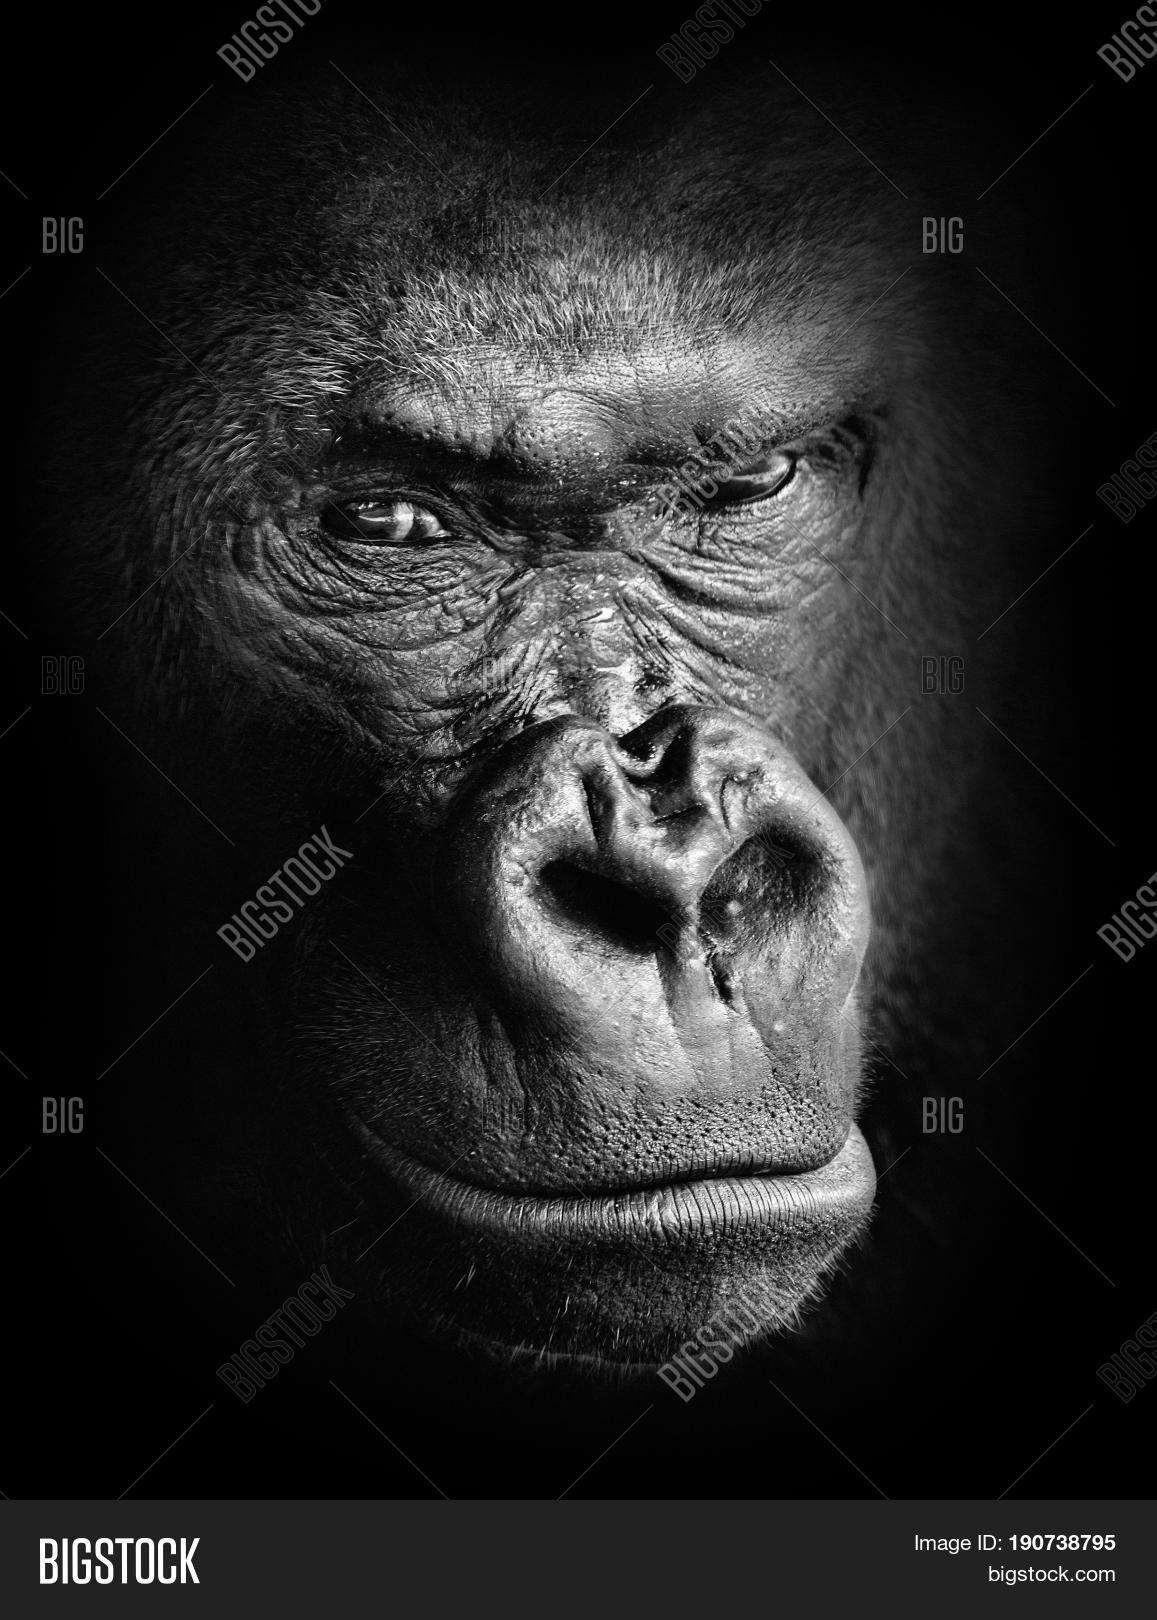 Black and white high contrast animal portrait of a pensive gorilla face isolated in shadows